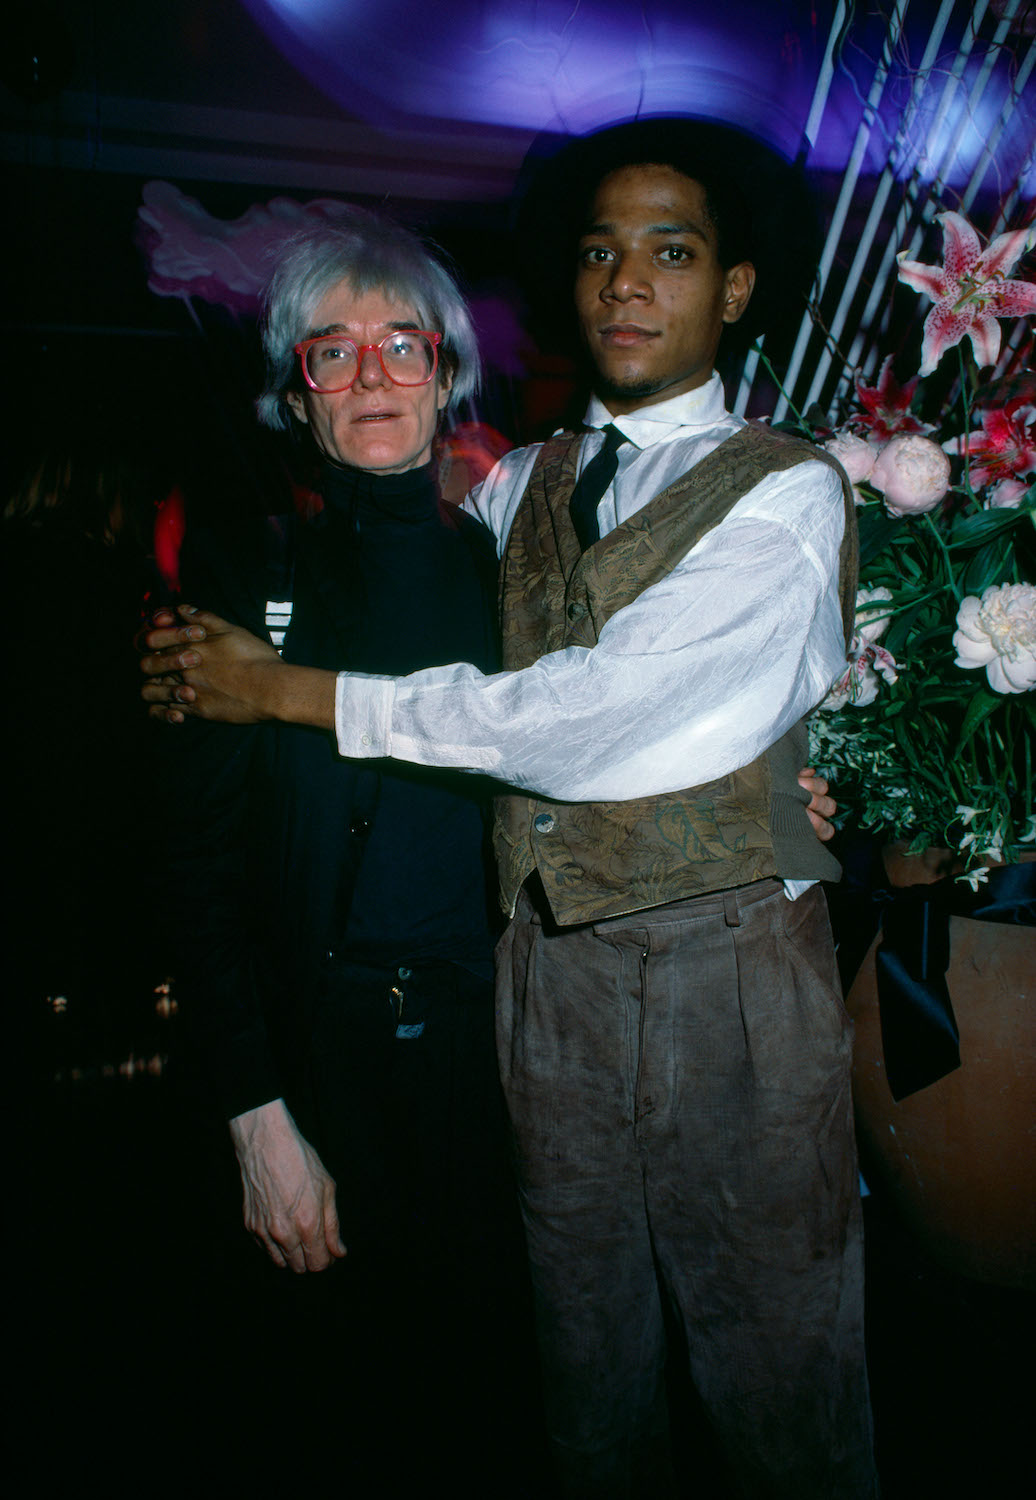 Andy Warhol and Jean-Michel Basquiat at the Area Nightclub, N.Y. 1985